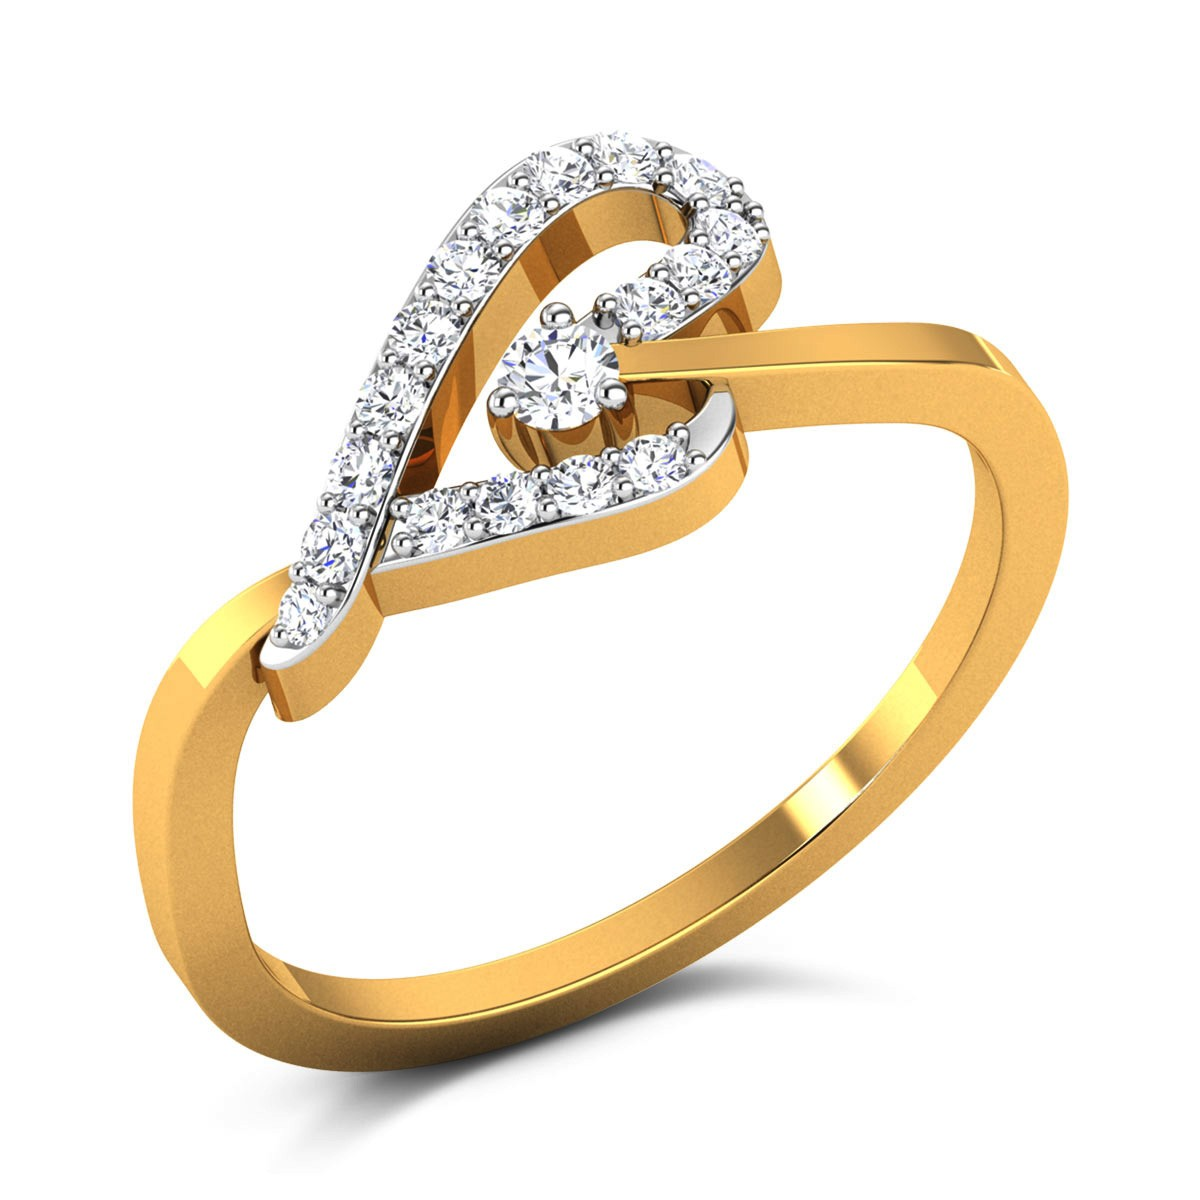 Tangerine Diamond Ring